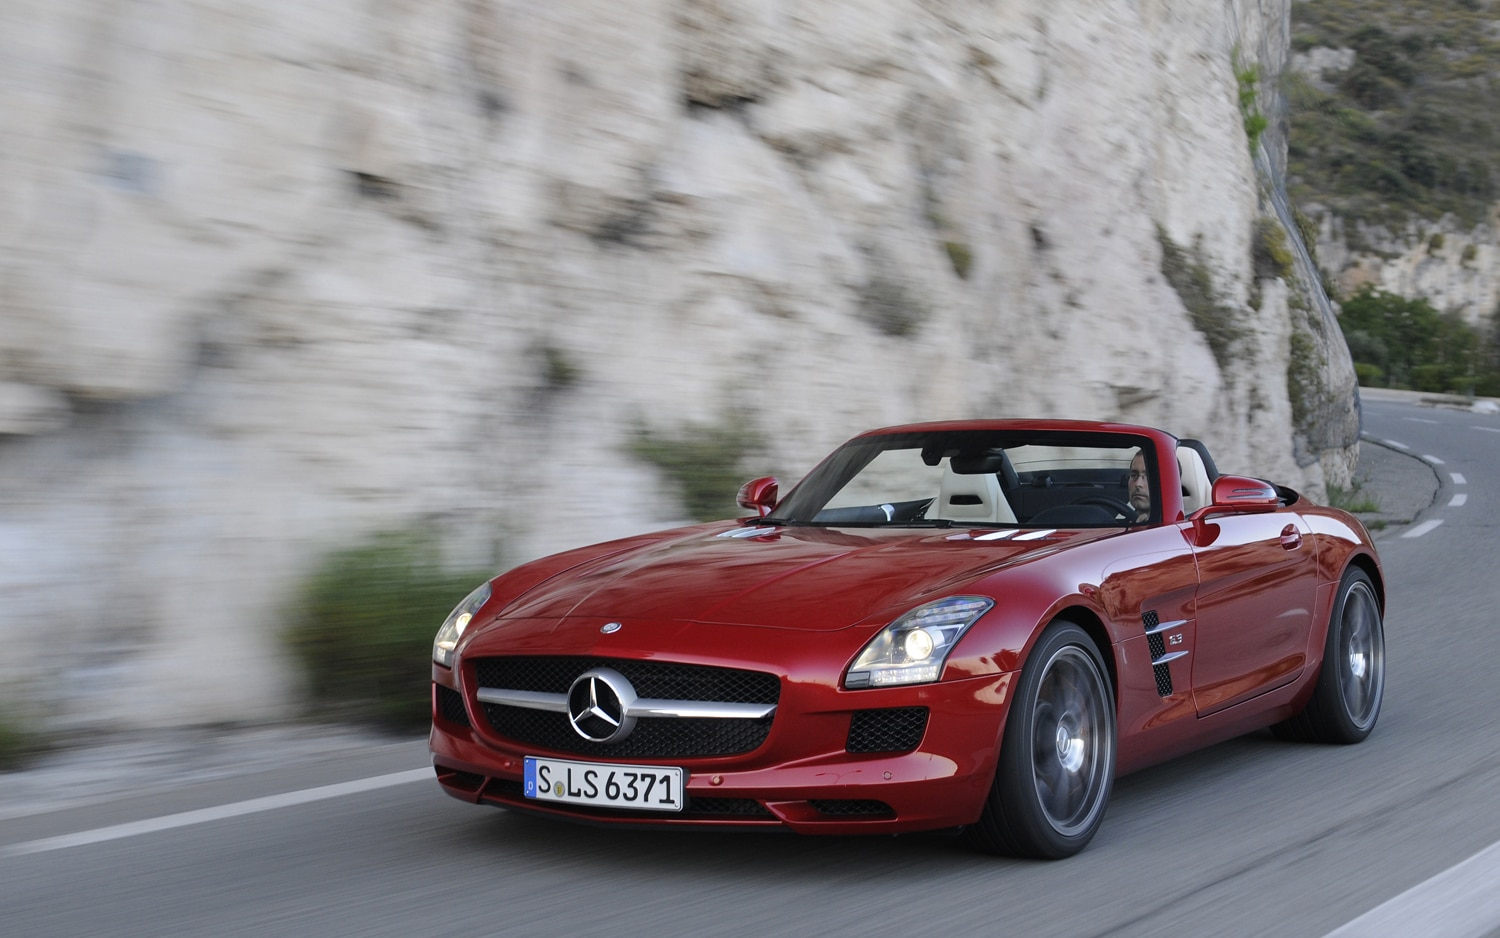 2012 mercedes benz sls amg roadster editor 39 s notebook for 2012 mercedes benz sls amg